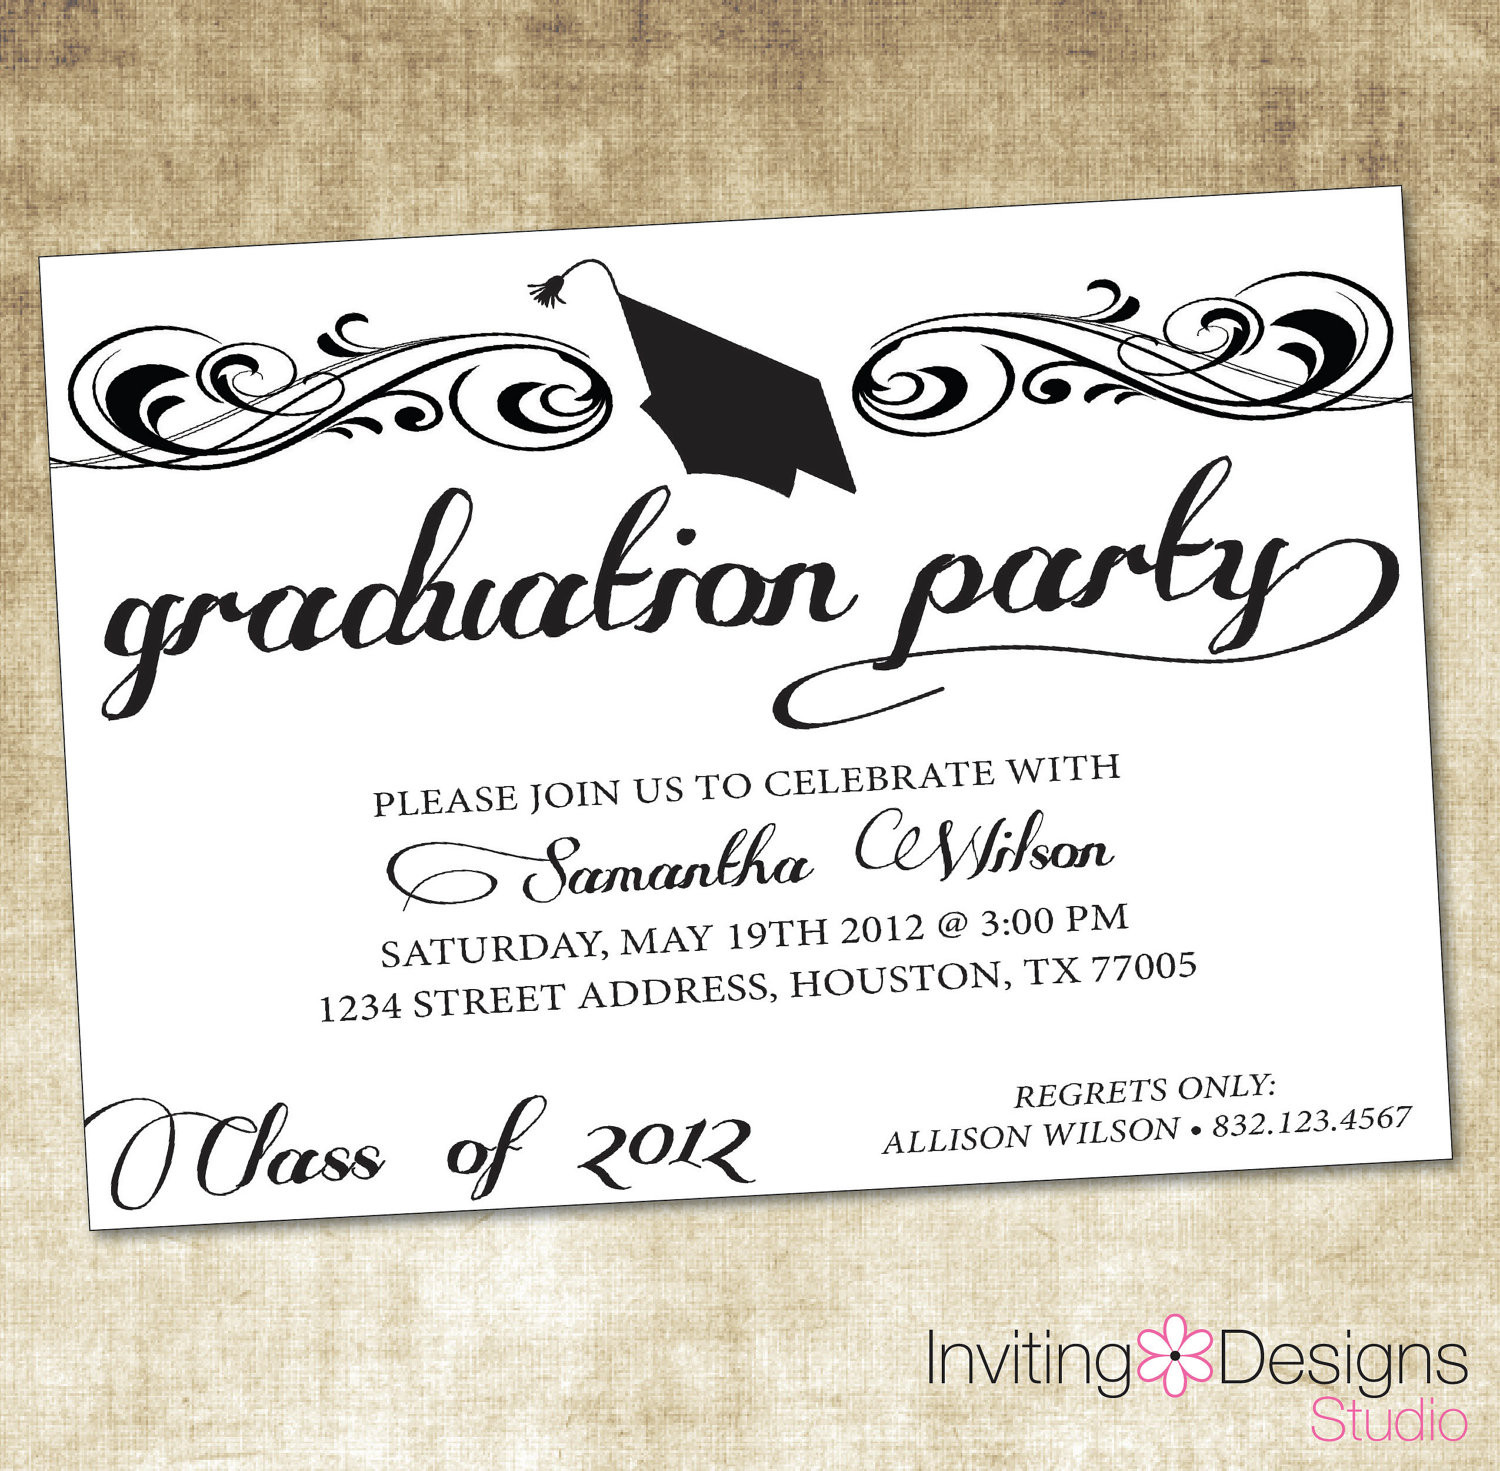 Graduation Party Invitations Ideas  Quotes For Graduation Party Invitations QuotesGram